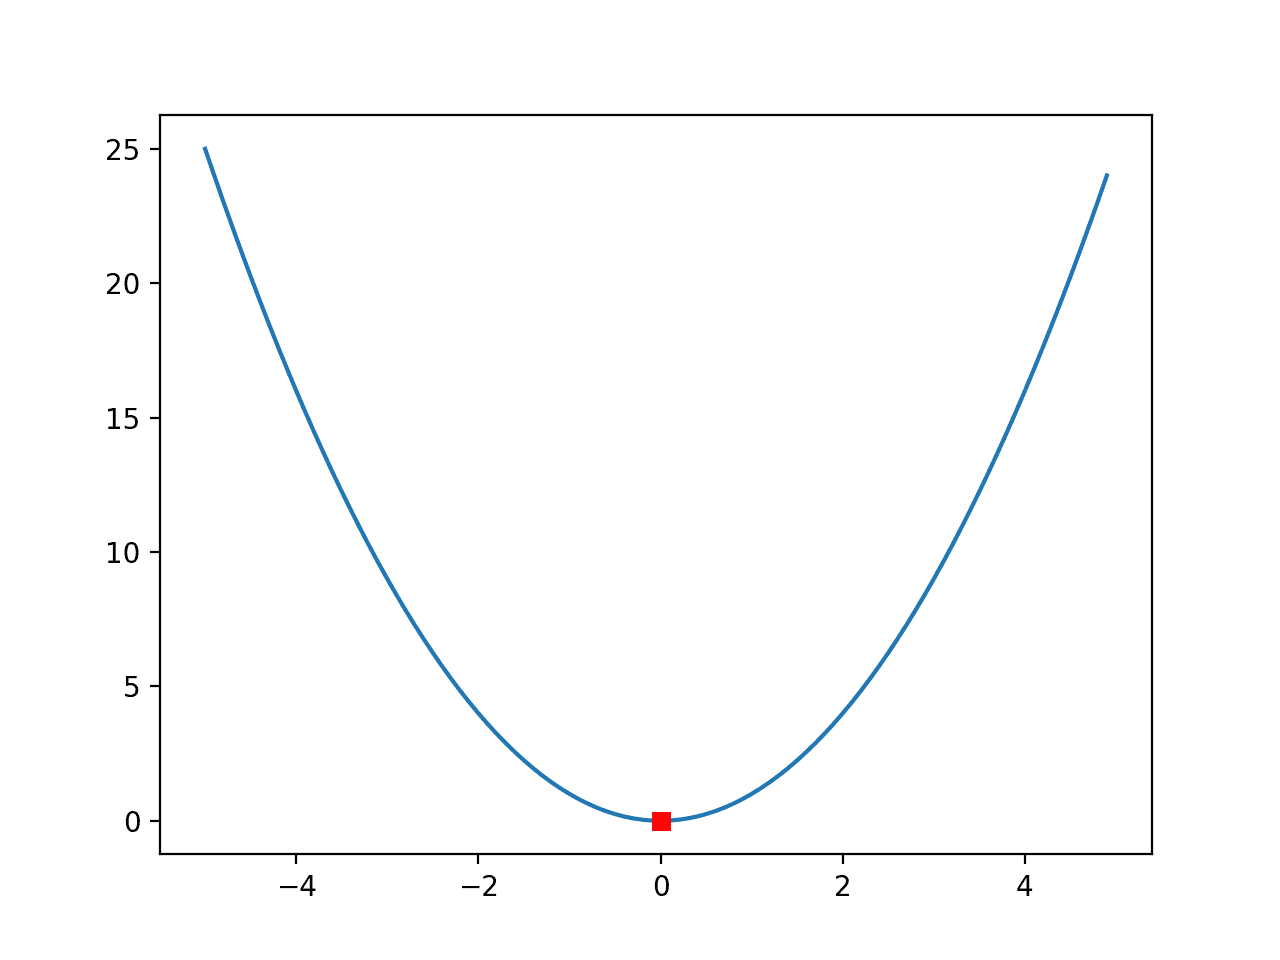 Line Plot of a One-Dimensional Function With Optima Marked by a Red Square